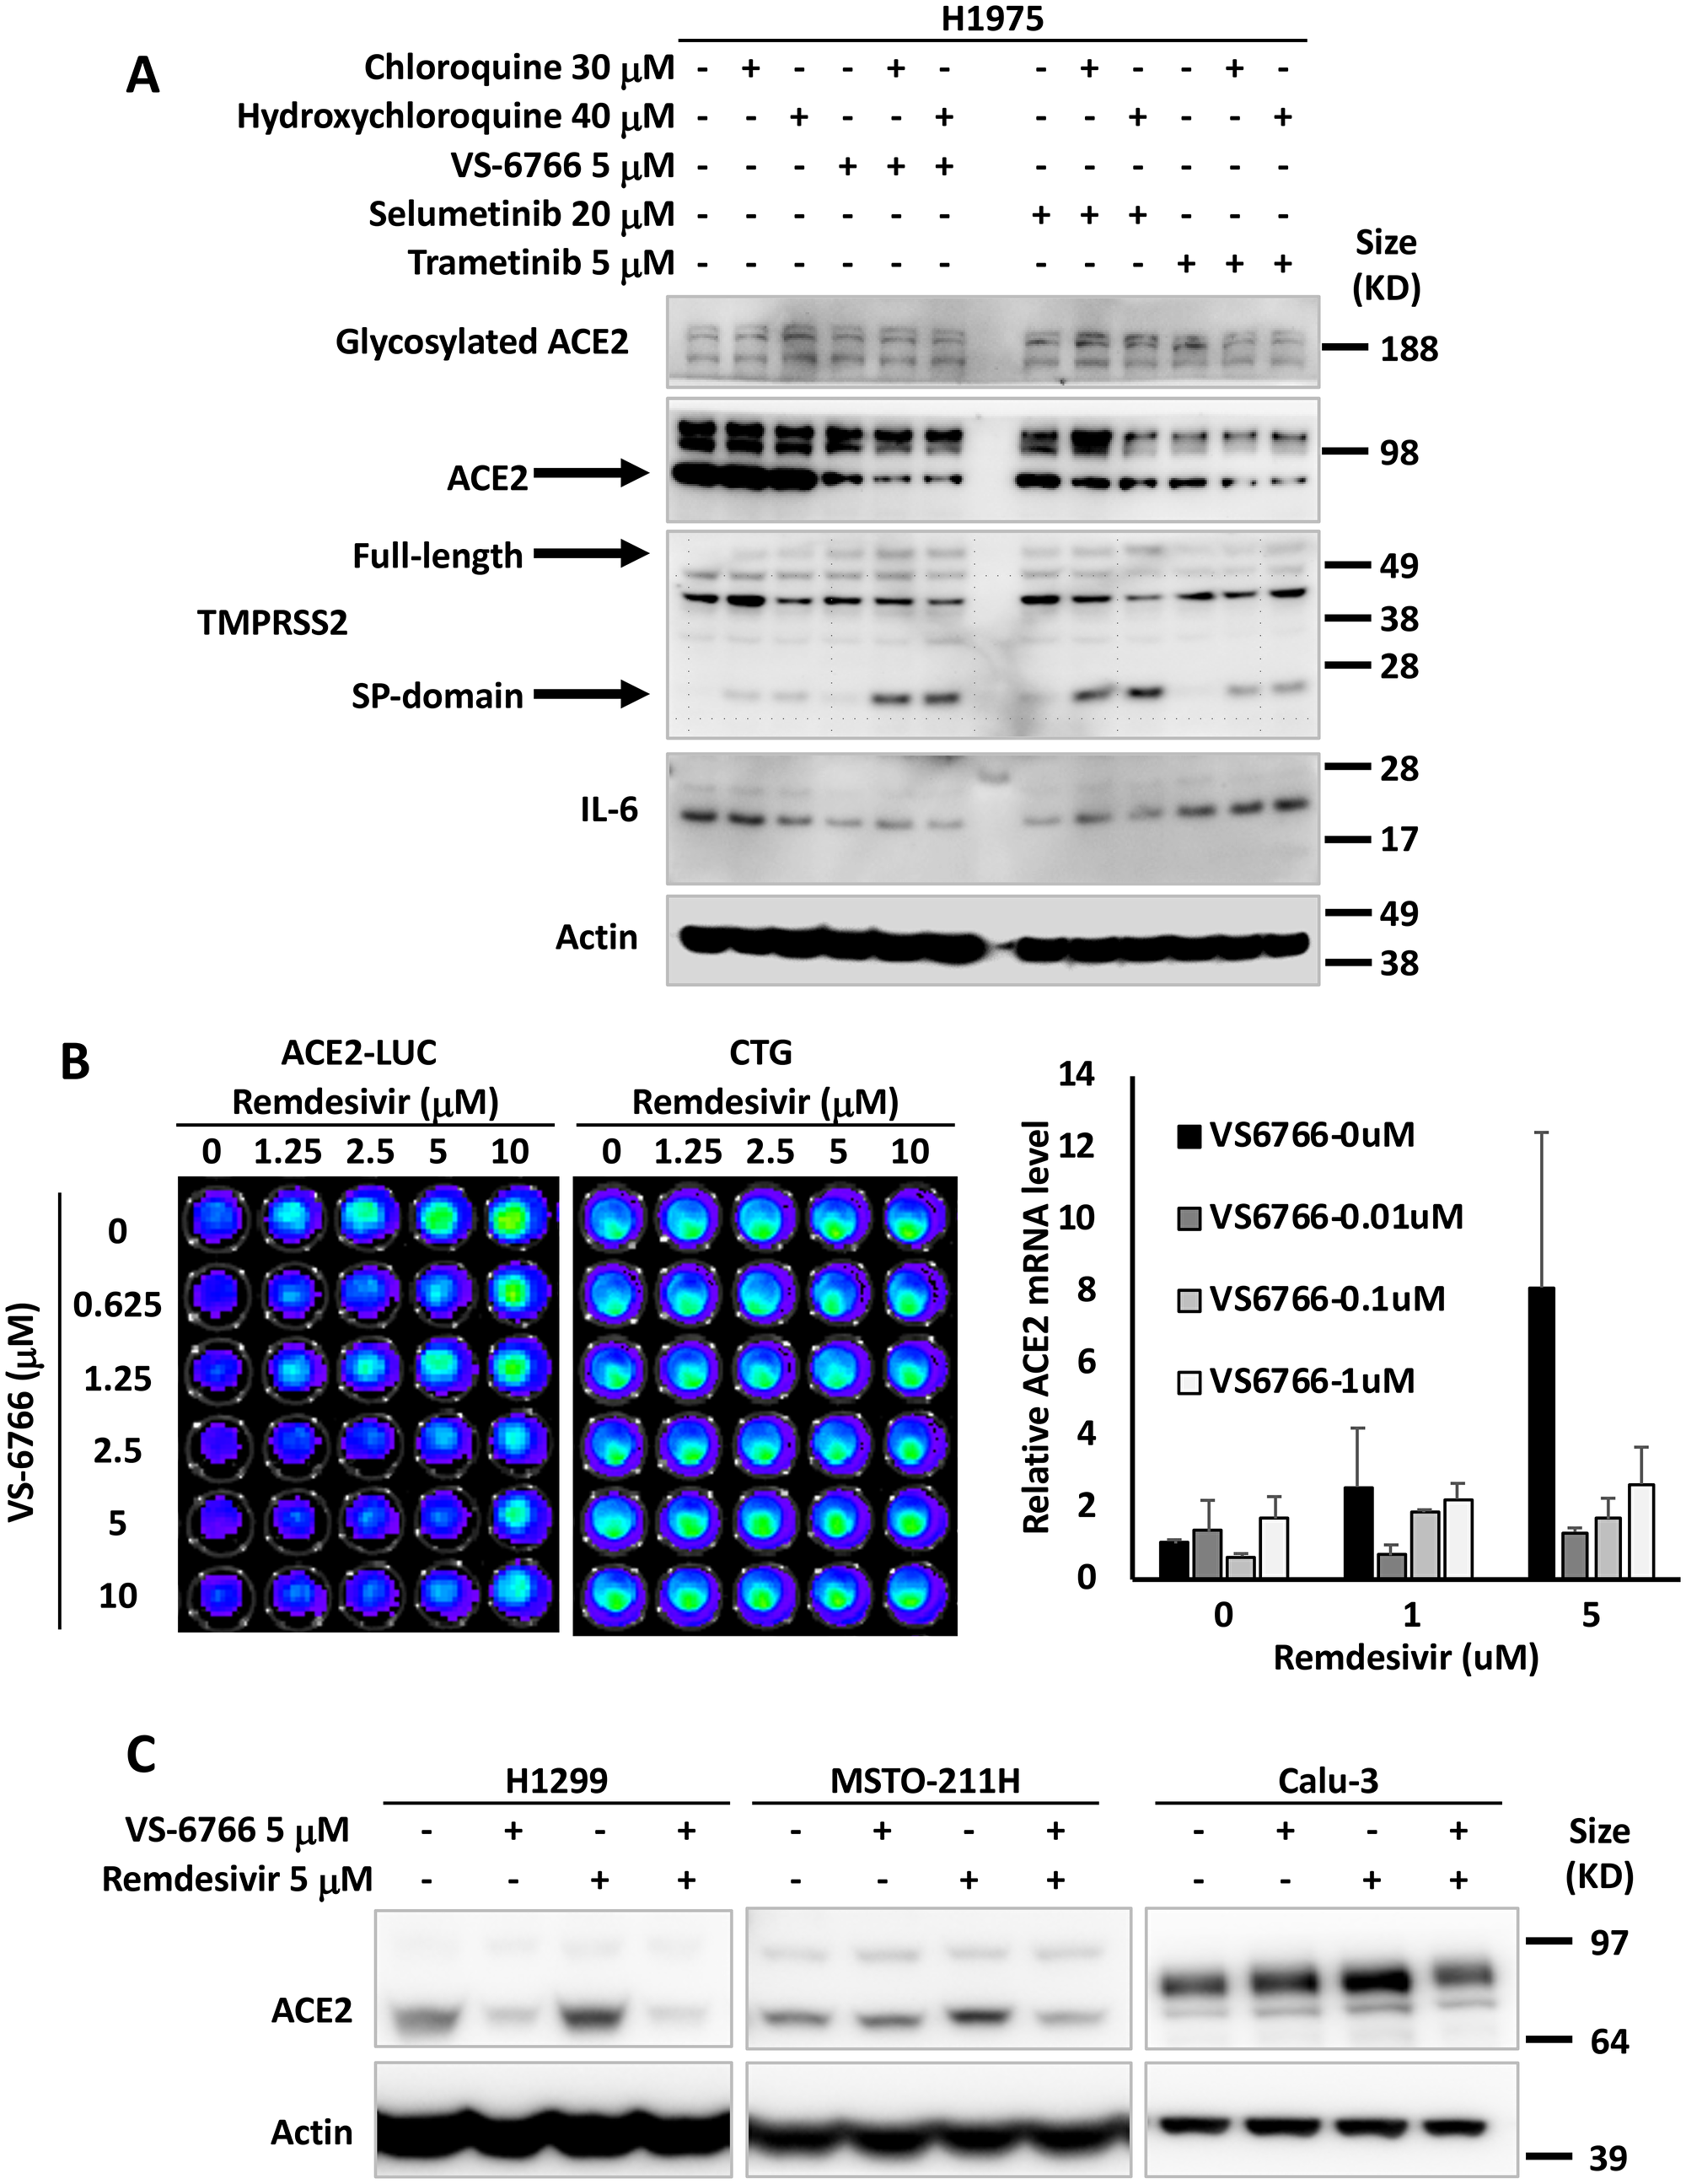 MEK inhibitors alone or in combination with remdesivir suppress ACE2 expression.